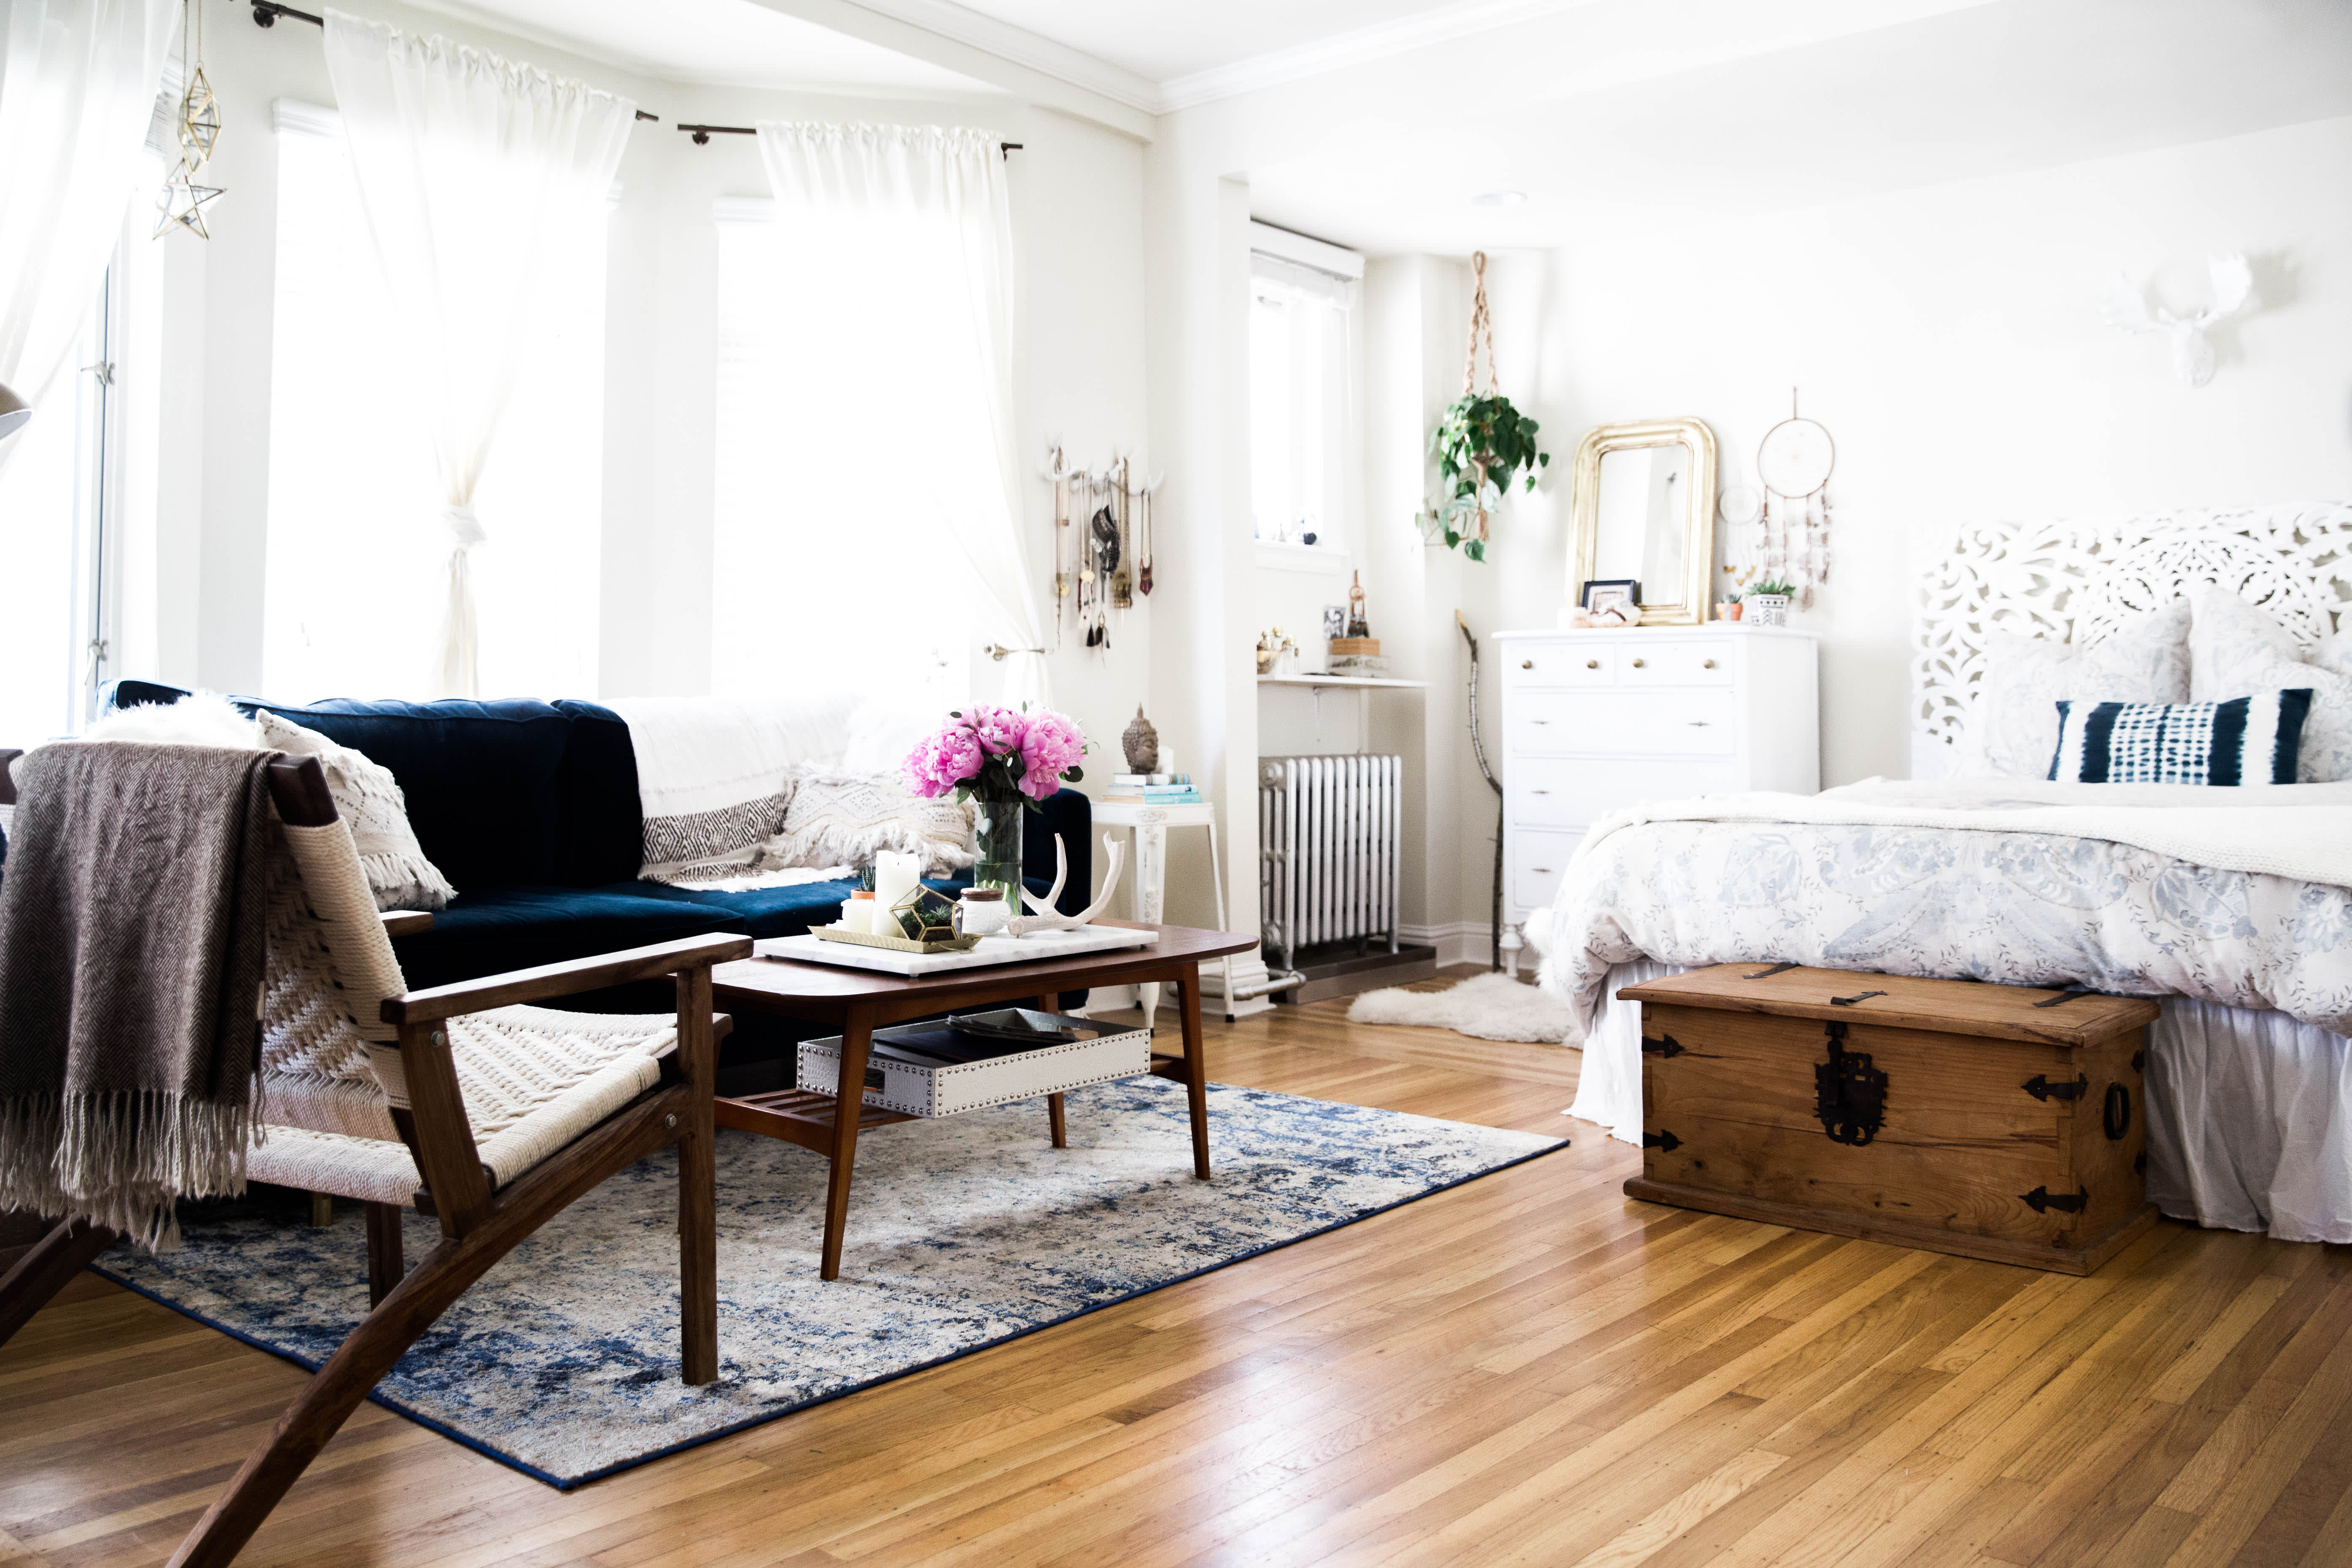 5 Things You Should Know About Living In A Studio Apartment From